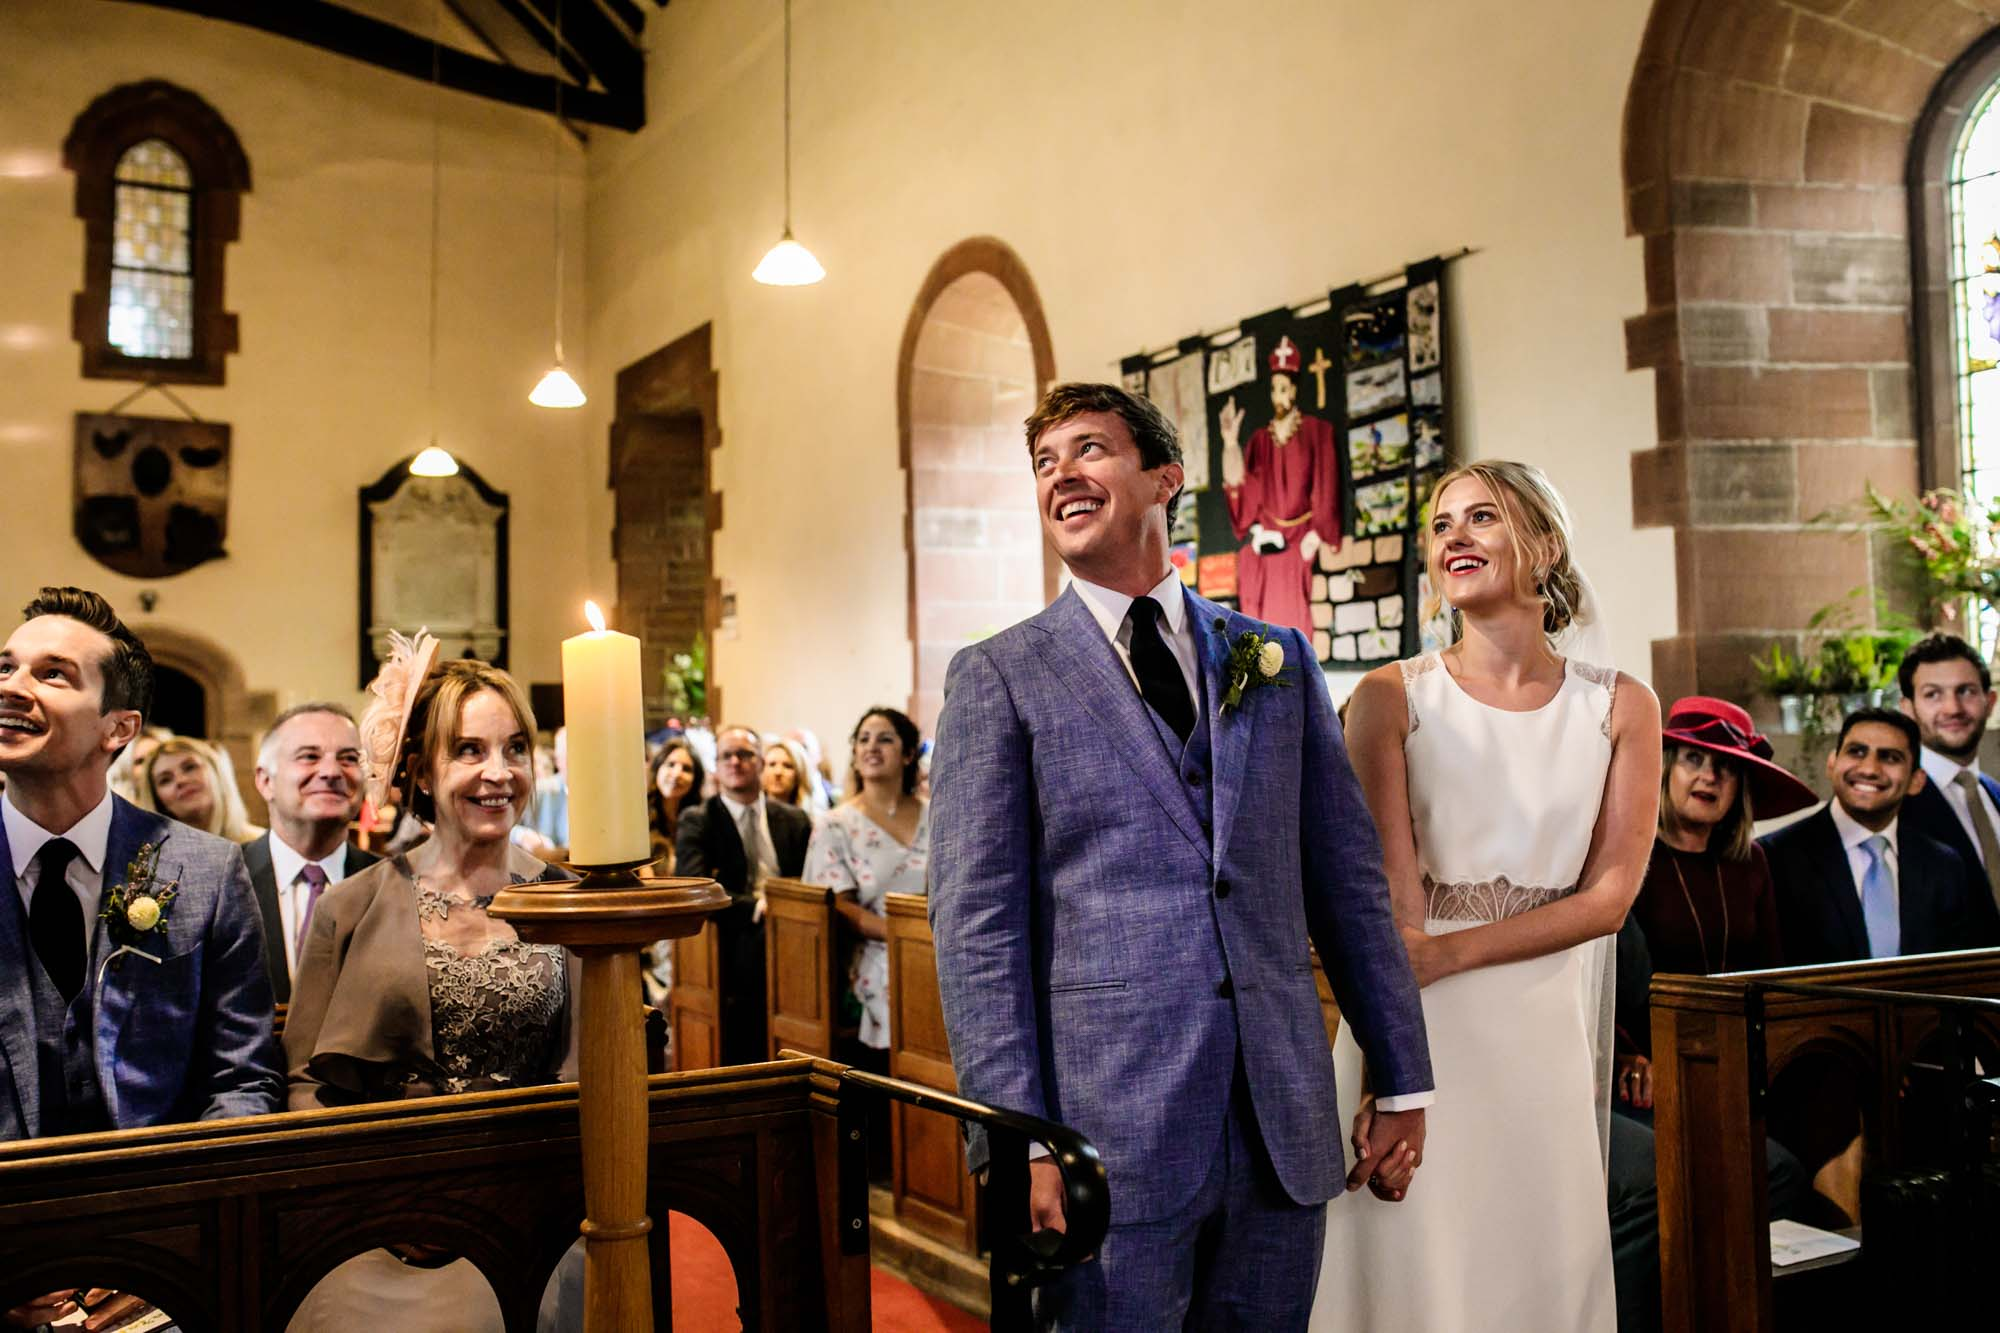 St Cuthberts Great Salkeld Wedding Photos